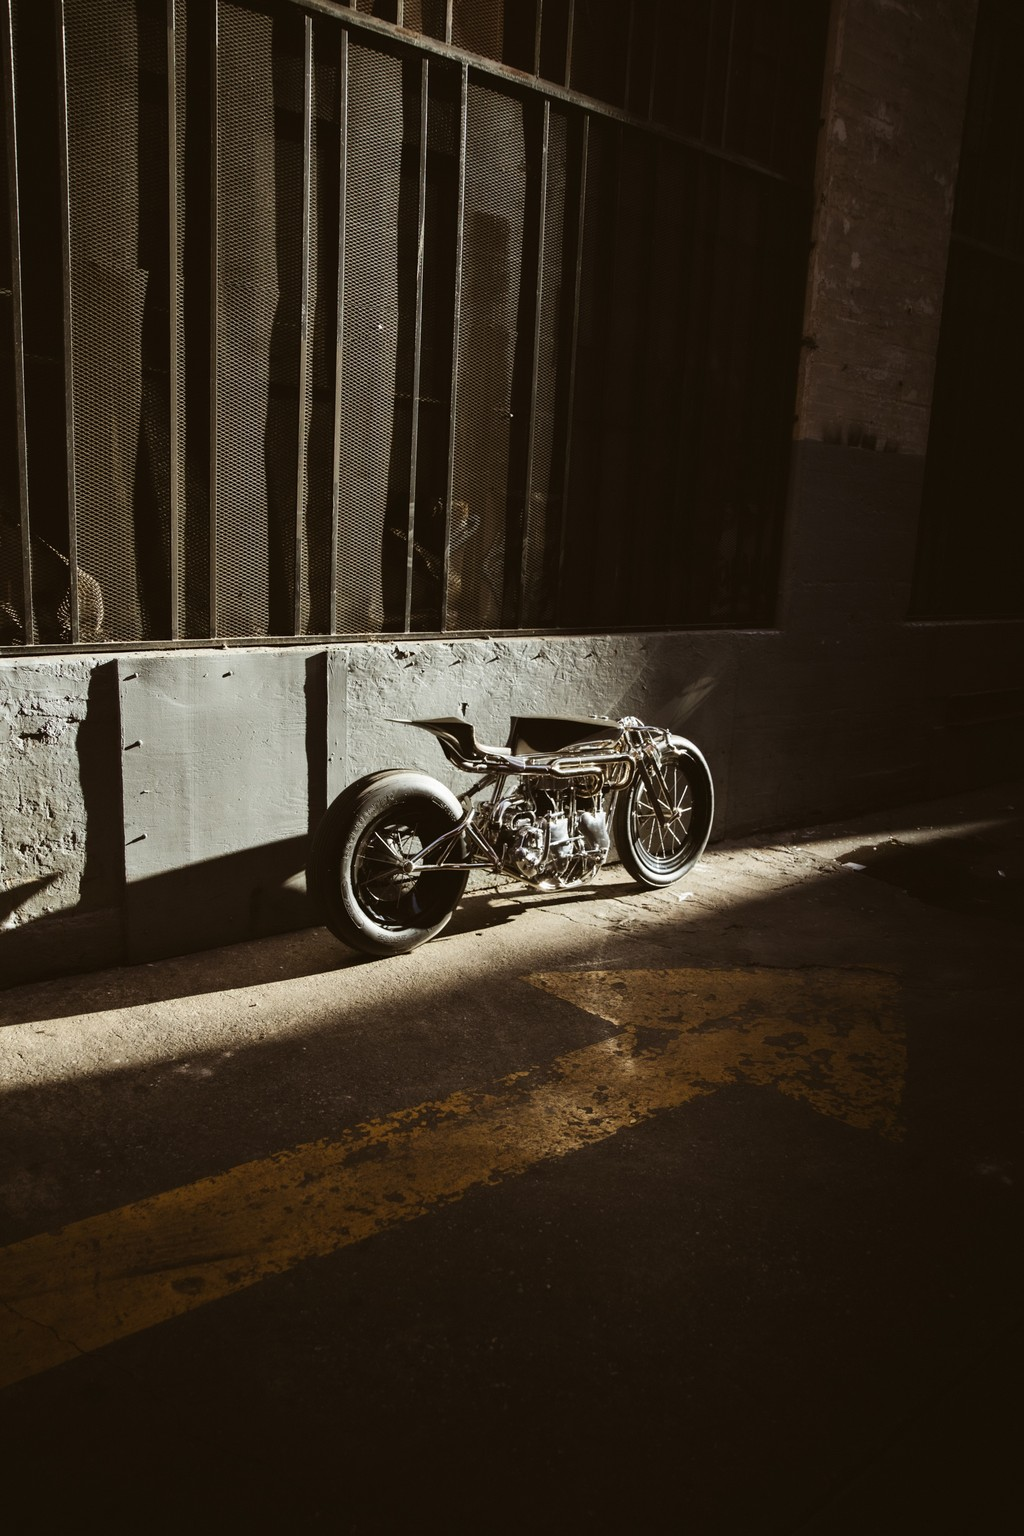 Max Hazan's Twin-engined Velocette motorcycle